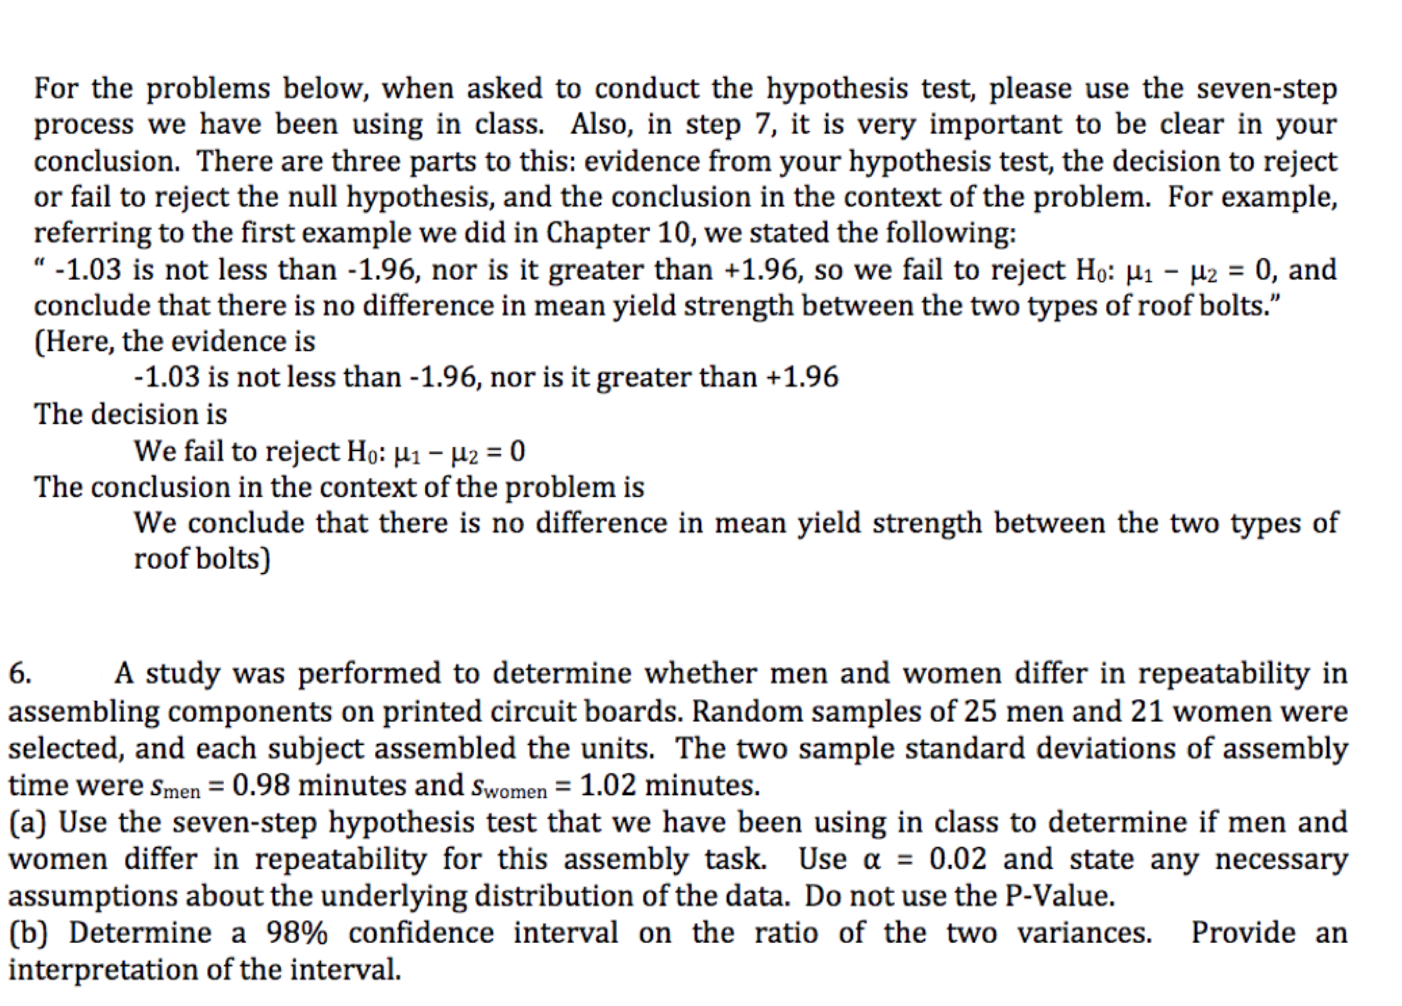 """For the problems below, when asked to conduct the hypothesis test, please use the seven-step process we have been using in class. Also, in step 7, it is very important to be clear in your conclusion. There are three parts to this: evidence from your hypothesis test, the decision to reject or fail to reject the null hypothesis, and the conclusion in the context of the problem. For example, referring to the first example we did in Chapter 10, we stated the following """"-1.03 is not less than -1.96, nor is it greater than +1.96, so we fail to reject Ho: Hi - 2 0, and conclude that there is no difference in mean yield strength between the two types of roof bolts."""" (Here, the evidence is -1.03 is not less than -1.96, nor is it greater than +1.96 The decision is We fail to reject Ho: H1-2 = 0 The conclusion in the context of the problem is We conclude that there is no difference in mean yield strength between the two types of roof bolts) A study was performed to determine whether men and women differ in repeatability in 6. assembling components on printed circuit boards. Random samples of 25 men and 21 women were selected, and each subject assembled the units. The two sample standard deviations of assembly time were smen = 0.98 minutes and swomen 1.02 minutes. (a) Use the seven-step hypothesis test that we have been using in class to determine if men and women differ in repeatability for this assembly task. Use a = 0.02 and state any necessary assumptions about the underlying distribution of the data. Do not use the P-Value. (b) Determine a 98% confidence interval on the ratio of the two variances. interpretation of the interval Provide an"""